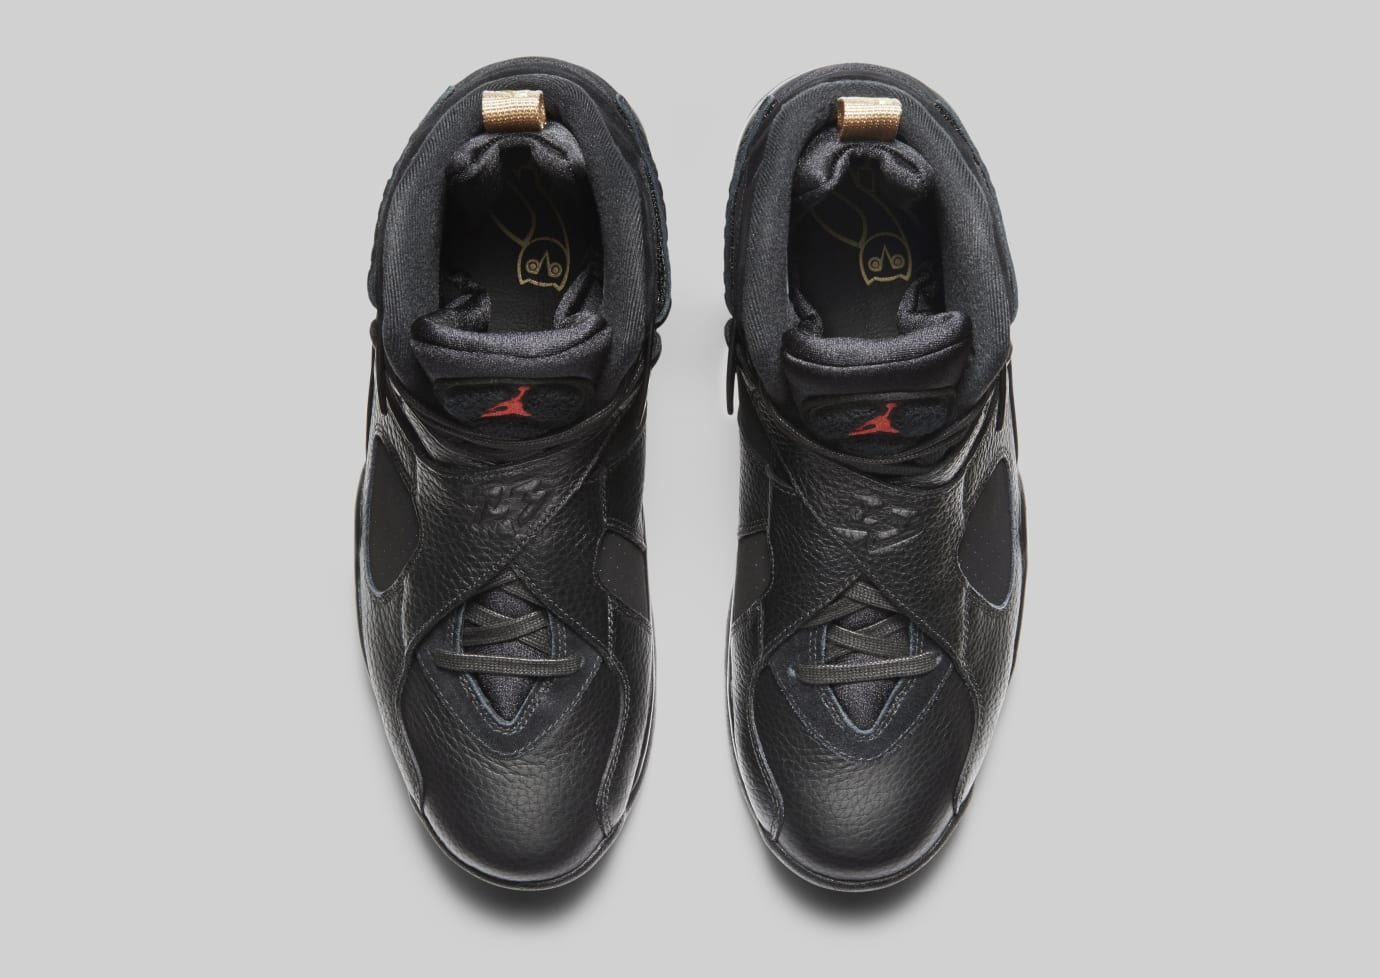 best loved 1244a 8cba7 Image via Nike Air Jordan 8  OVO  Black Metallic Gold-Varsity Red-Blur  AA1239